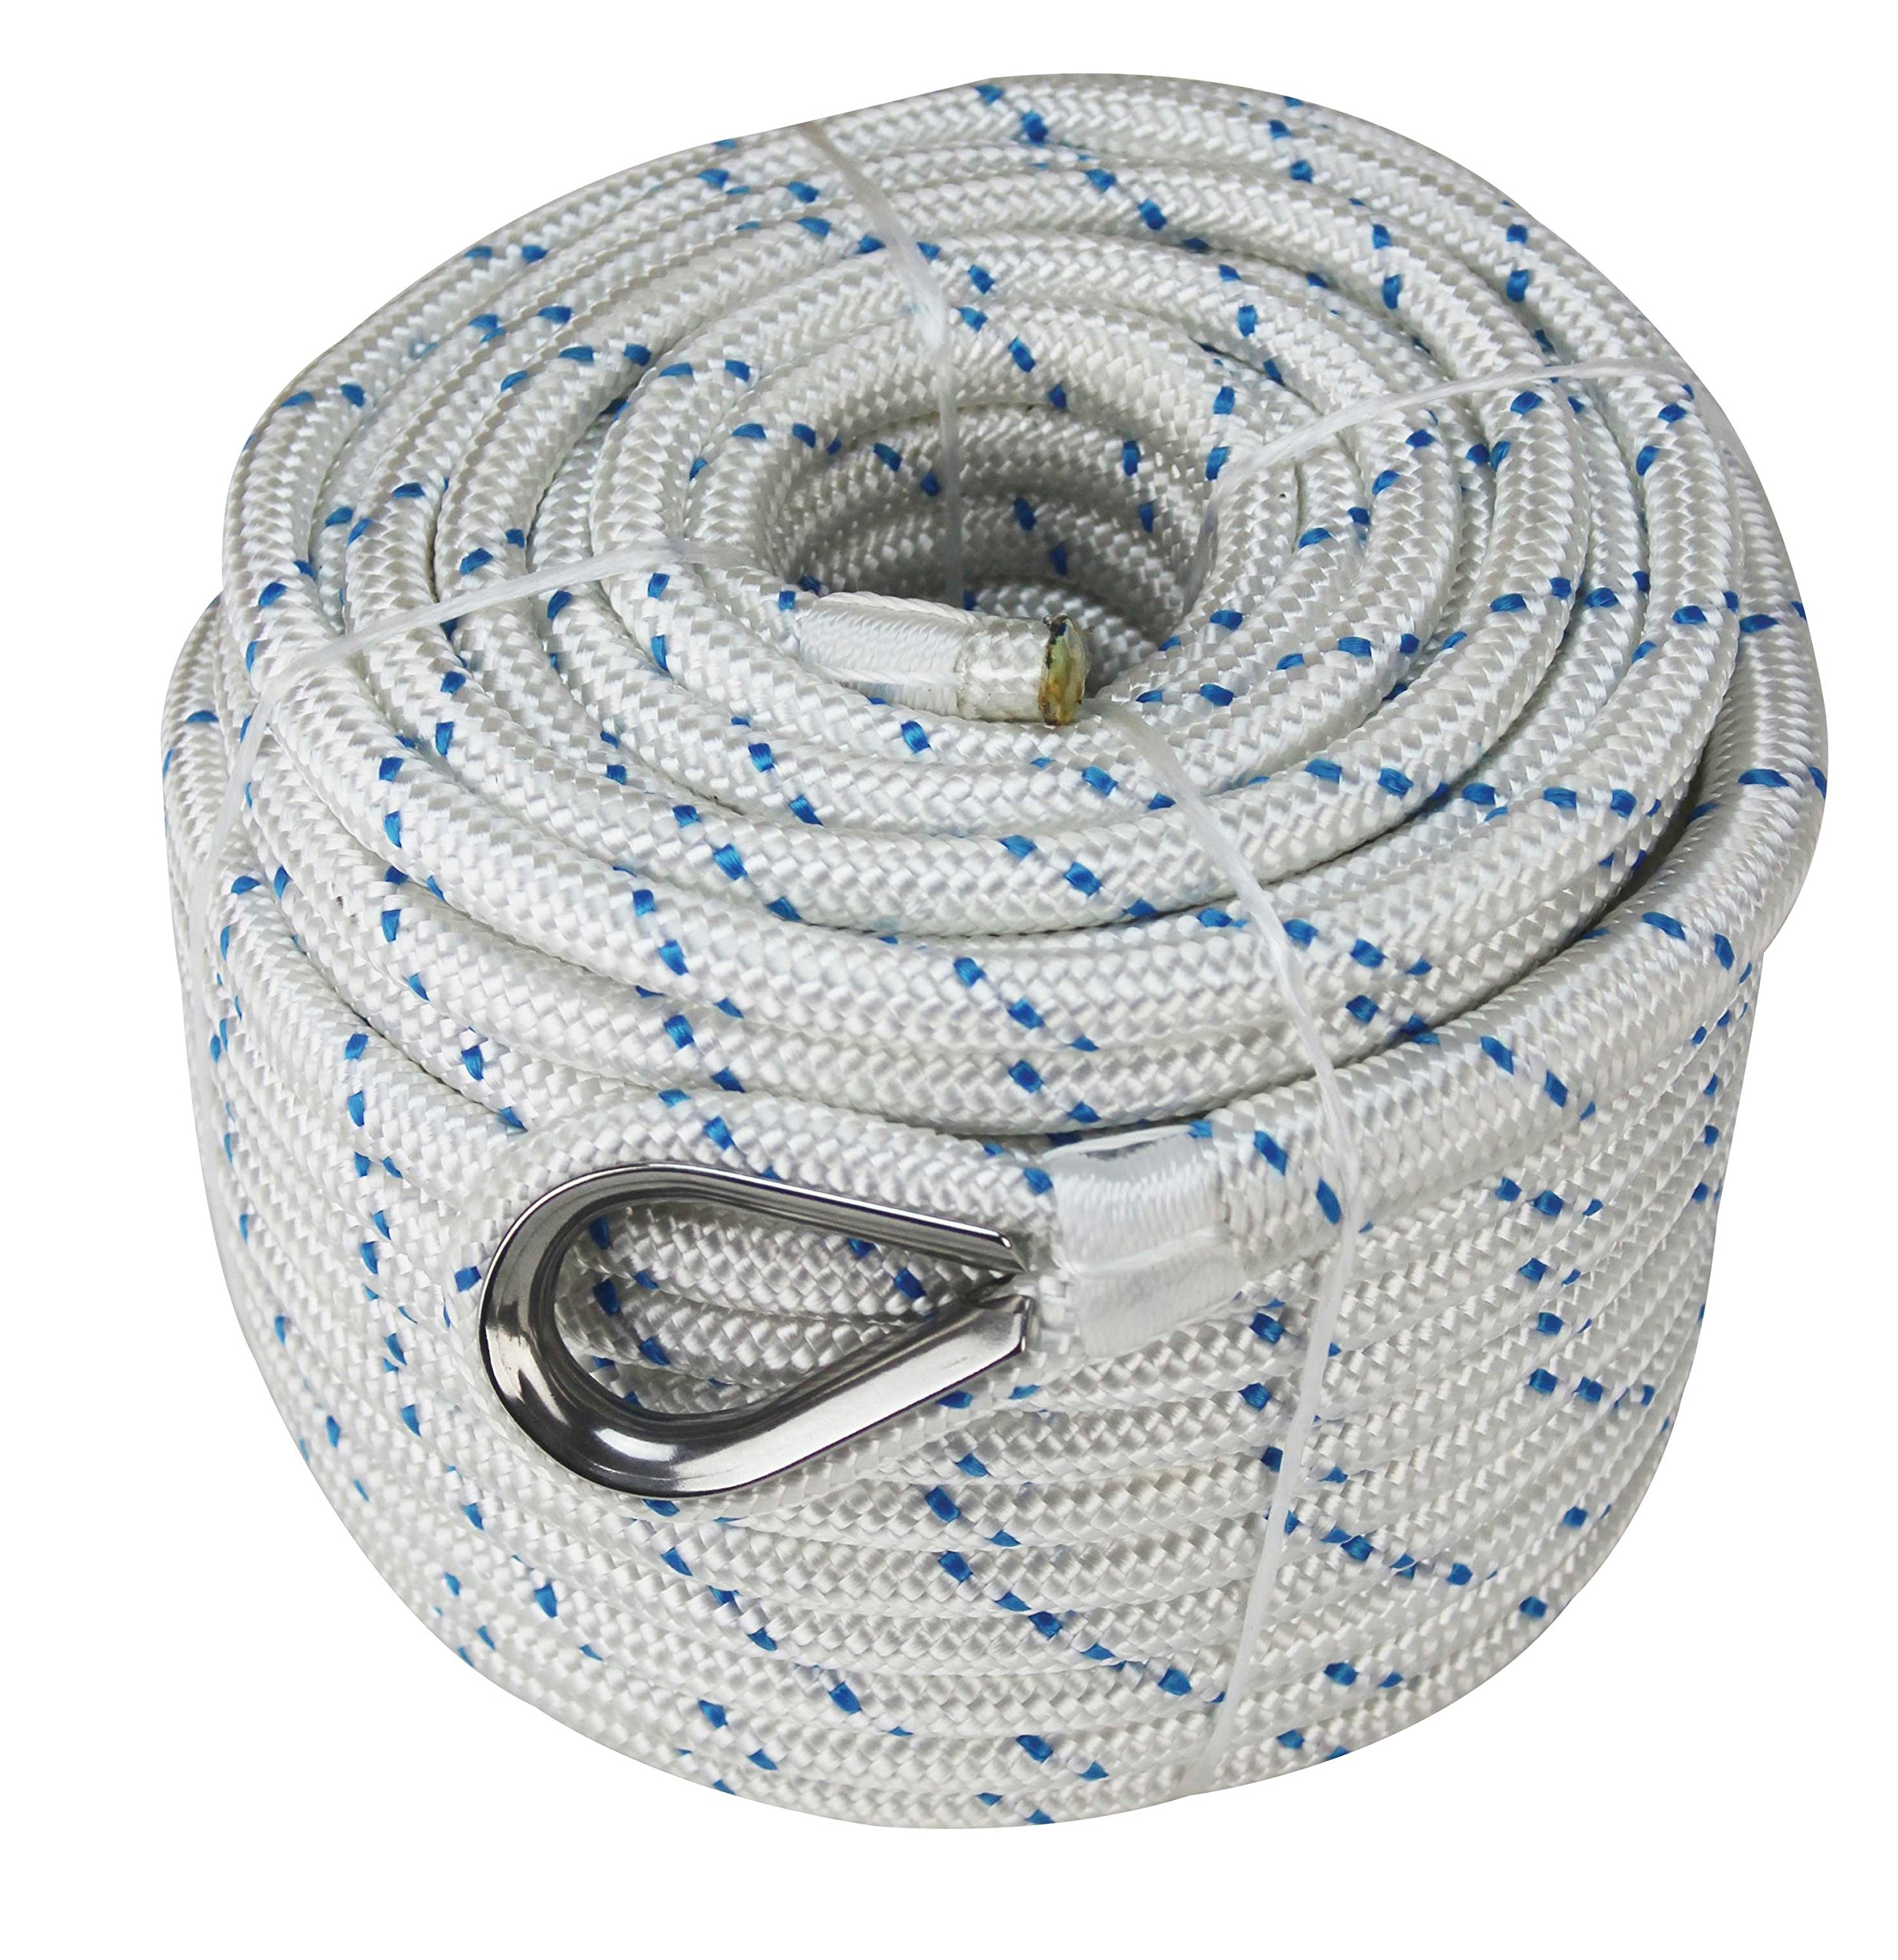 Extreme Max 3006.2532 White w/Blue Tracer 5/8'' x 200' BoatTector Double Braid Nylon Anchor Line with Thimble